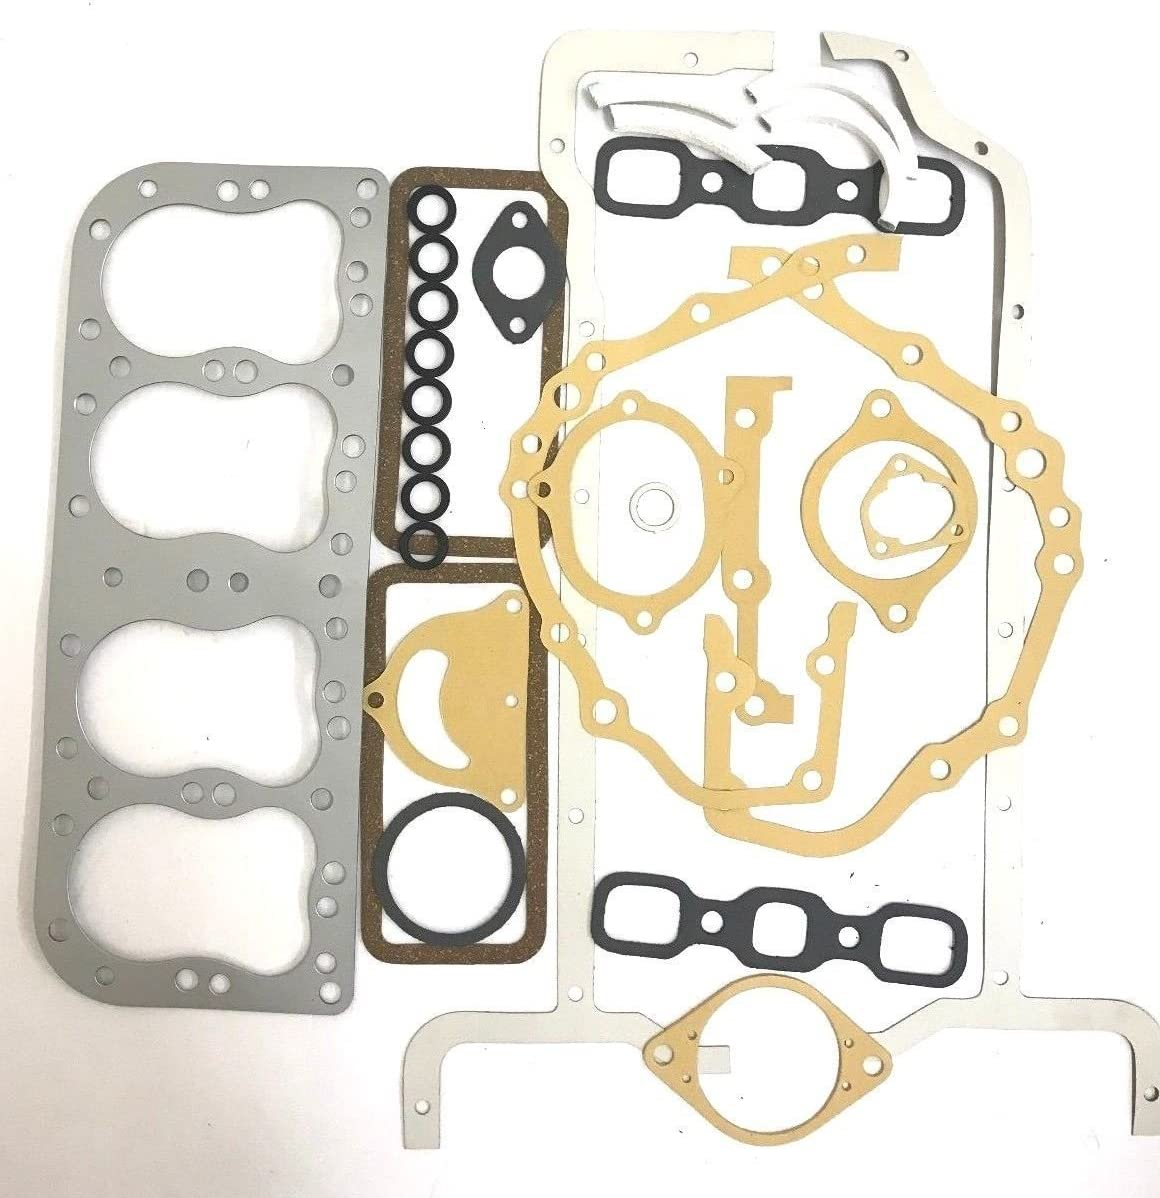 1 year warranty New Full Gasket Set Compatible with 8N 9N Metal Tractor 2N Ford Excellent